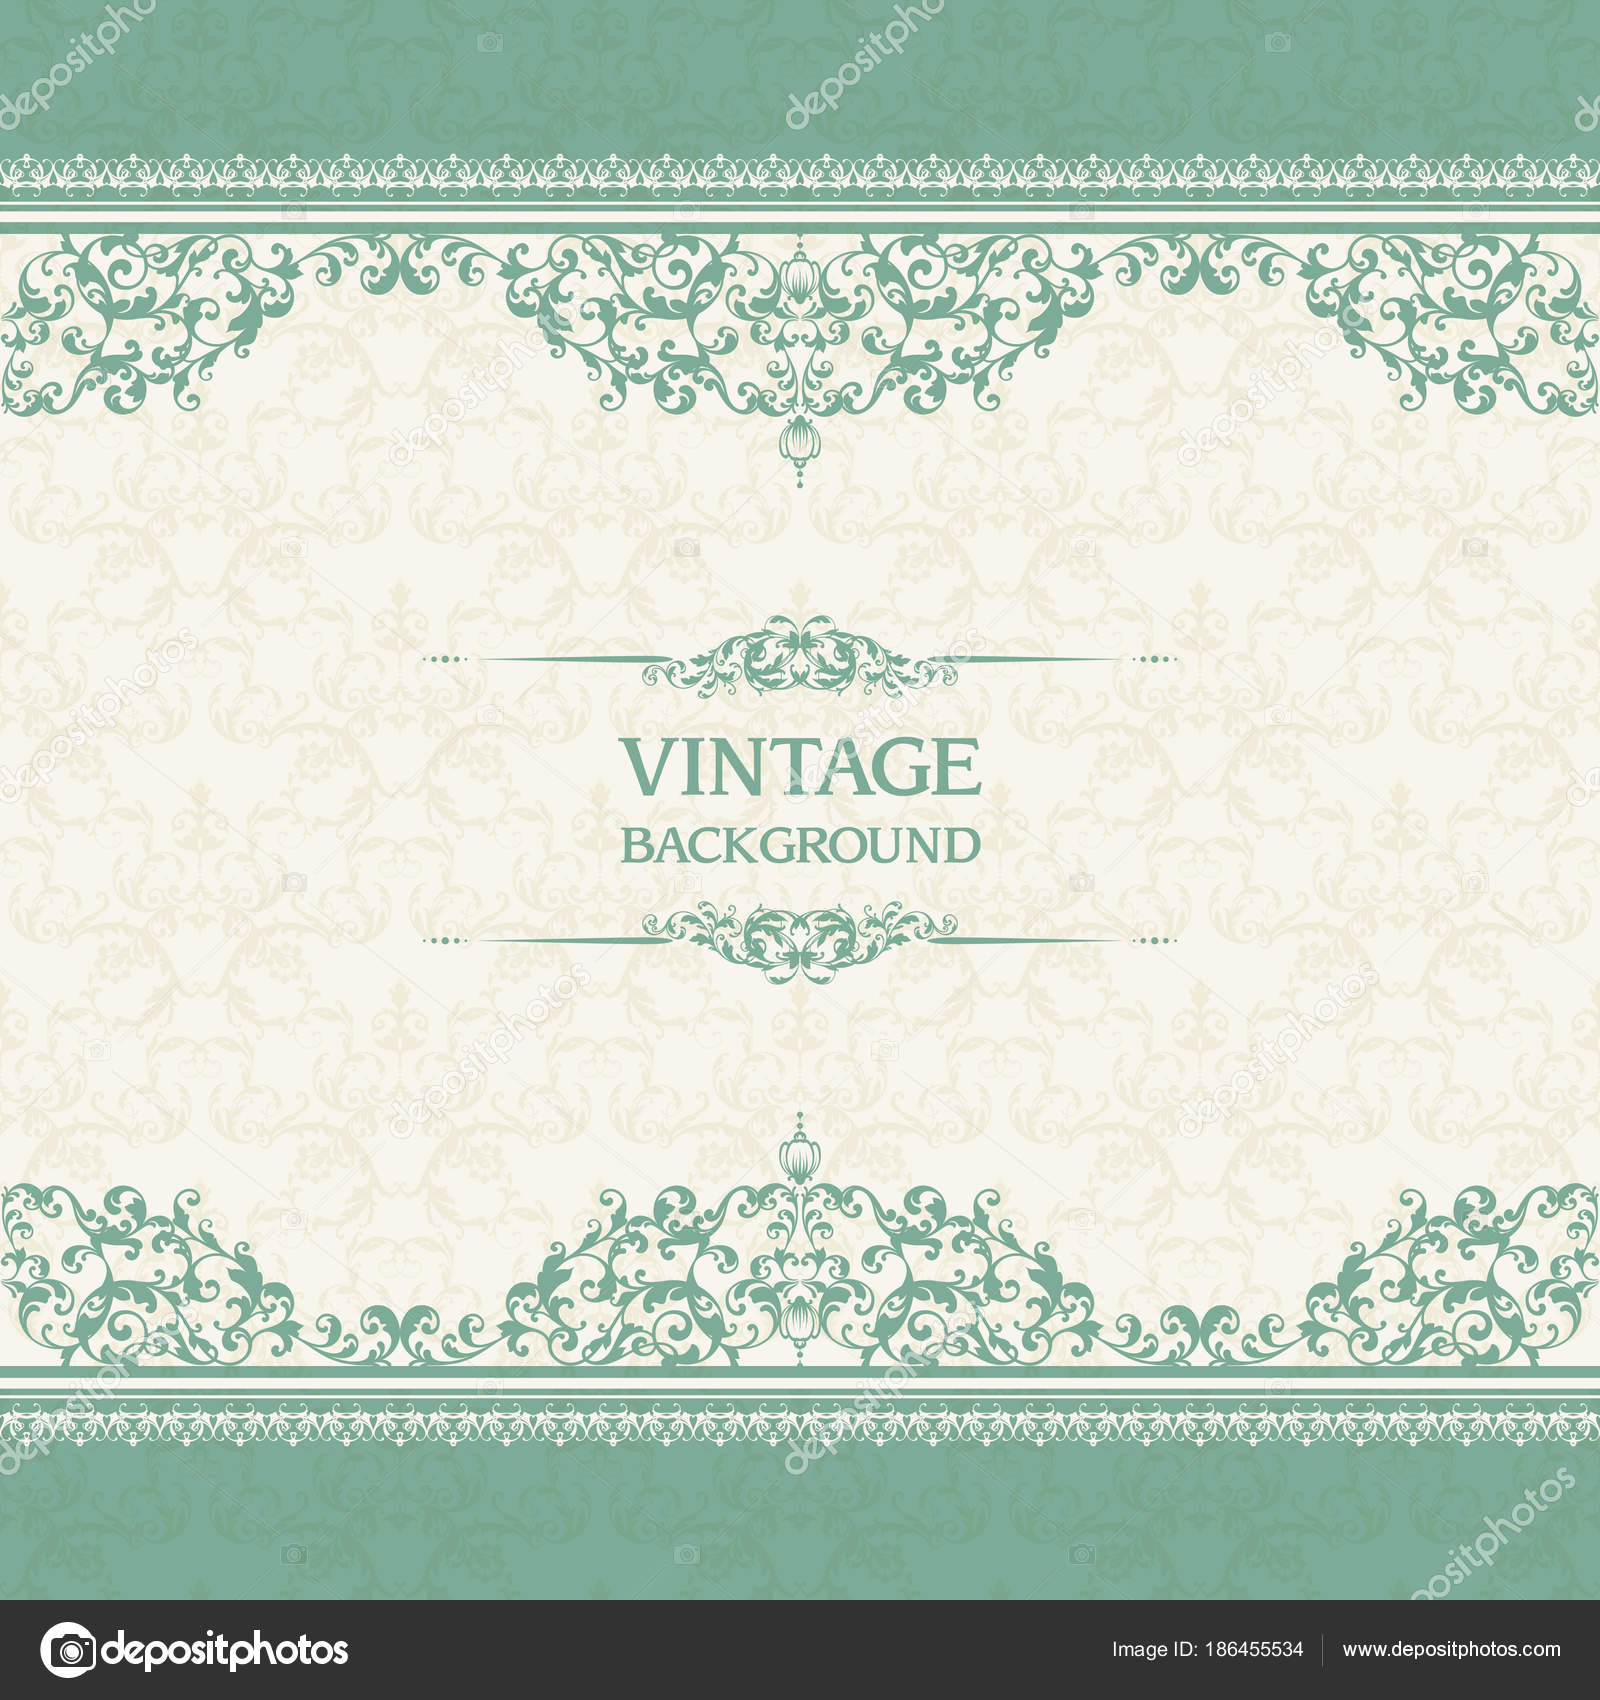 vintage template with pattern and ornate borders ornamental lace